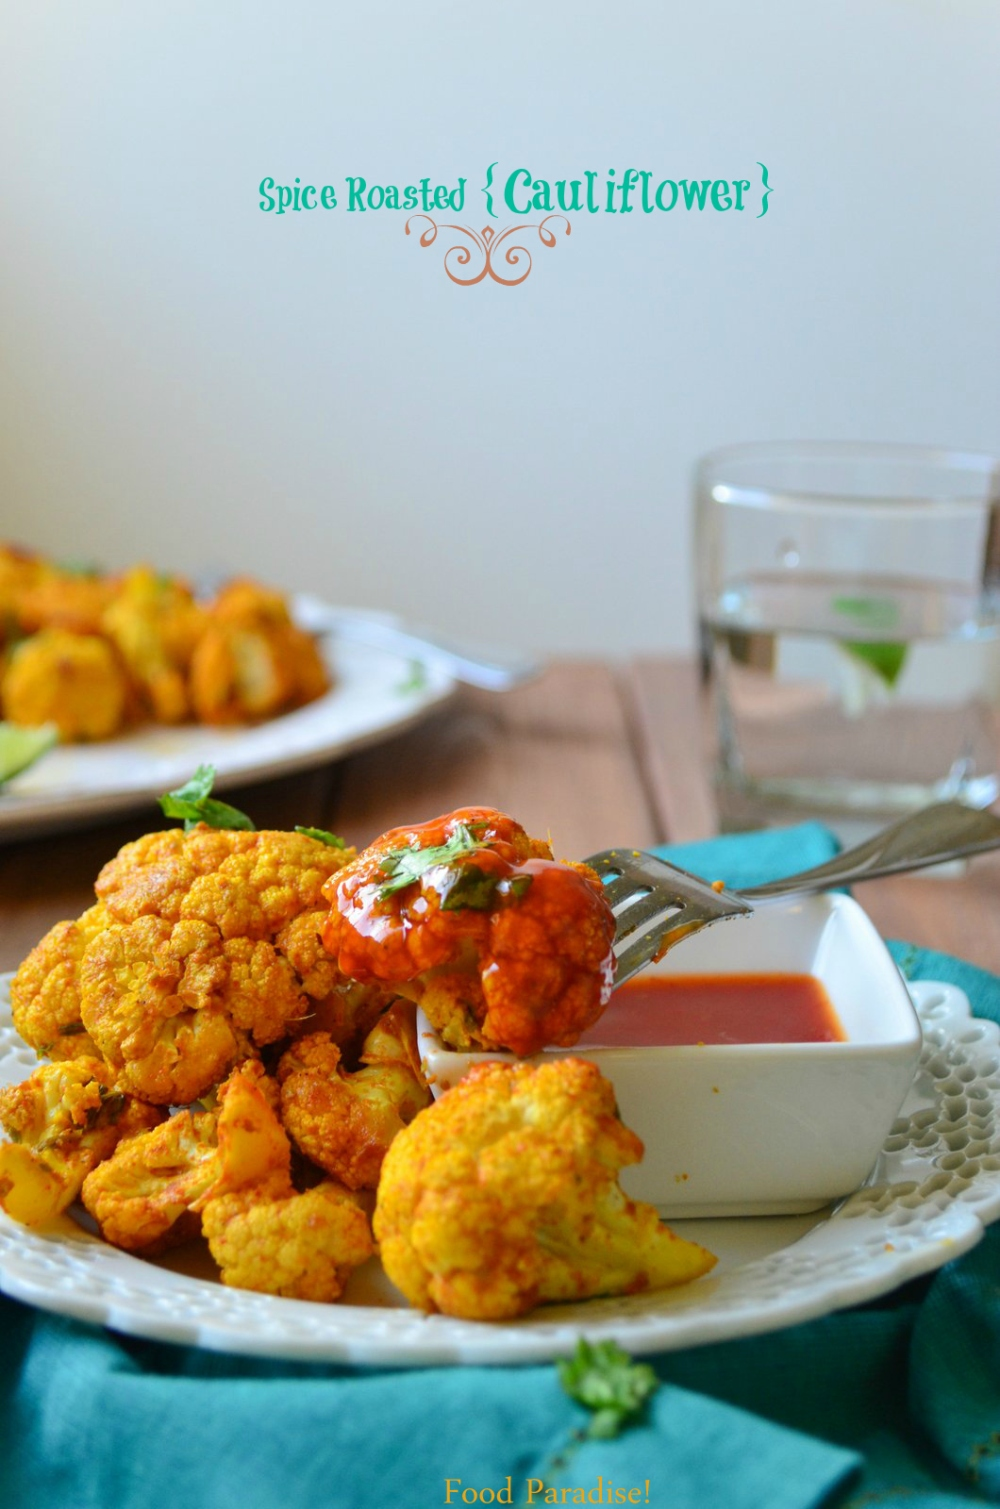 Roasted Cauliflower with Ketchup